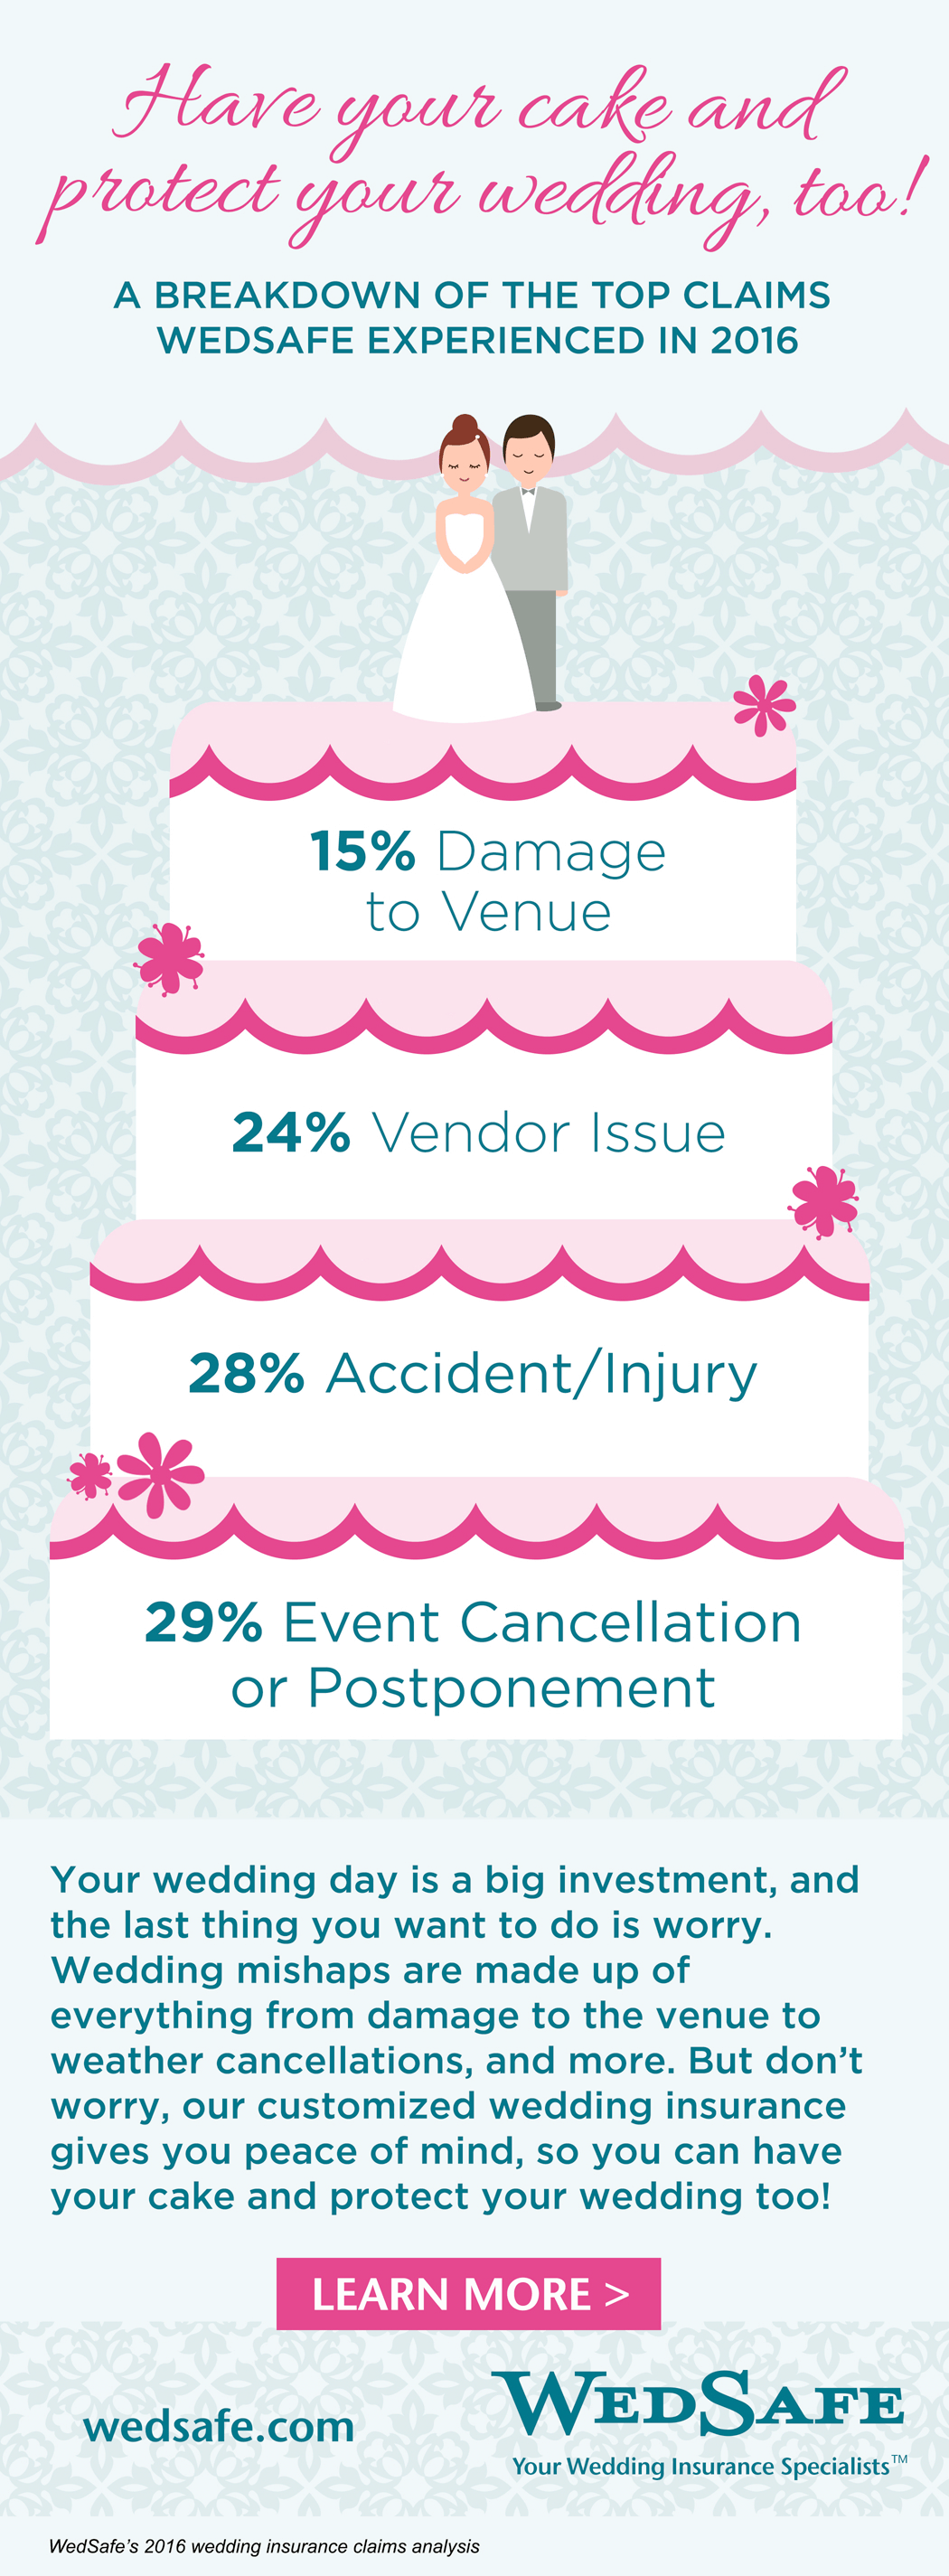 These Are The Top Mishaps That Put A Damper On Weddings ...